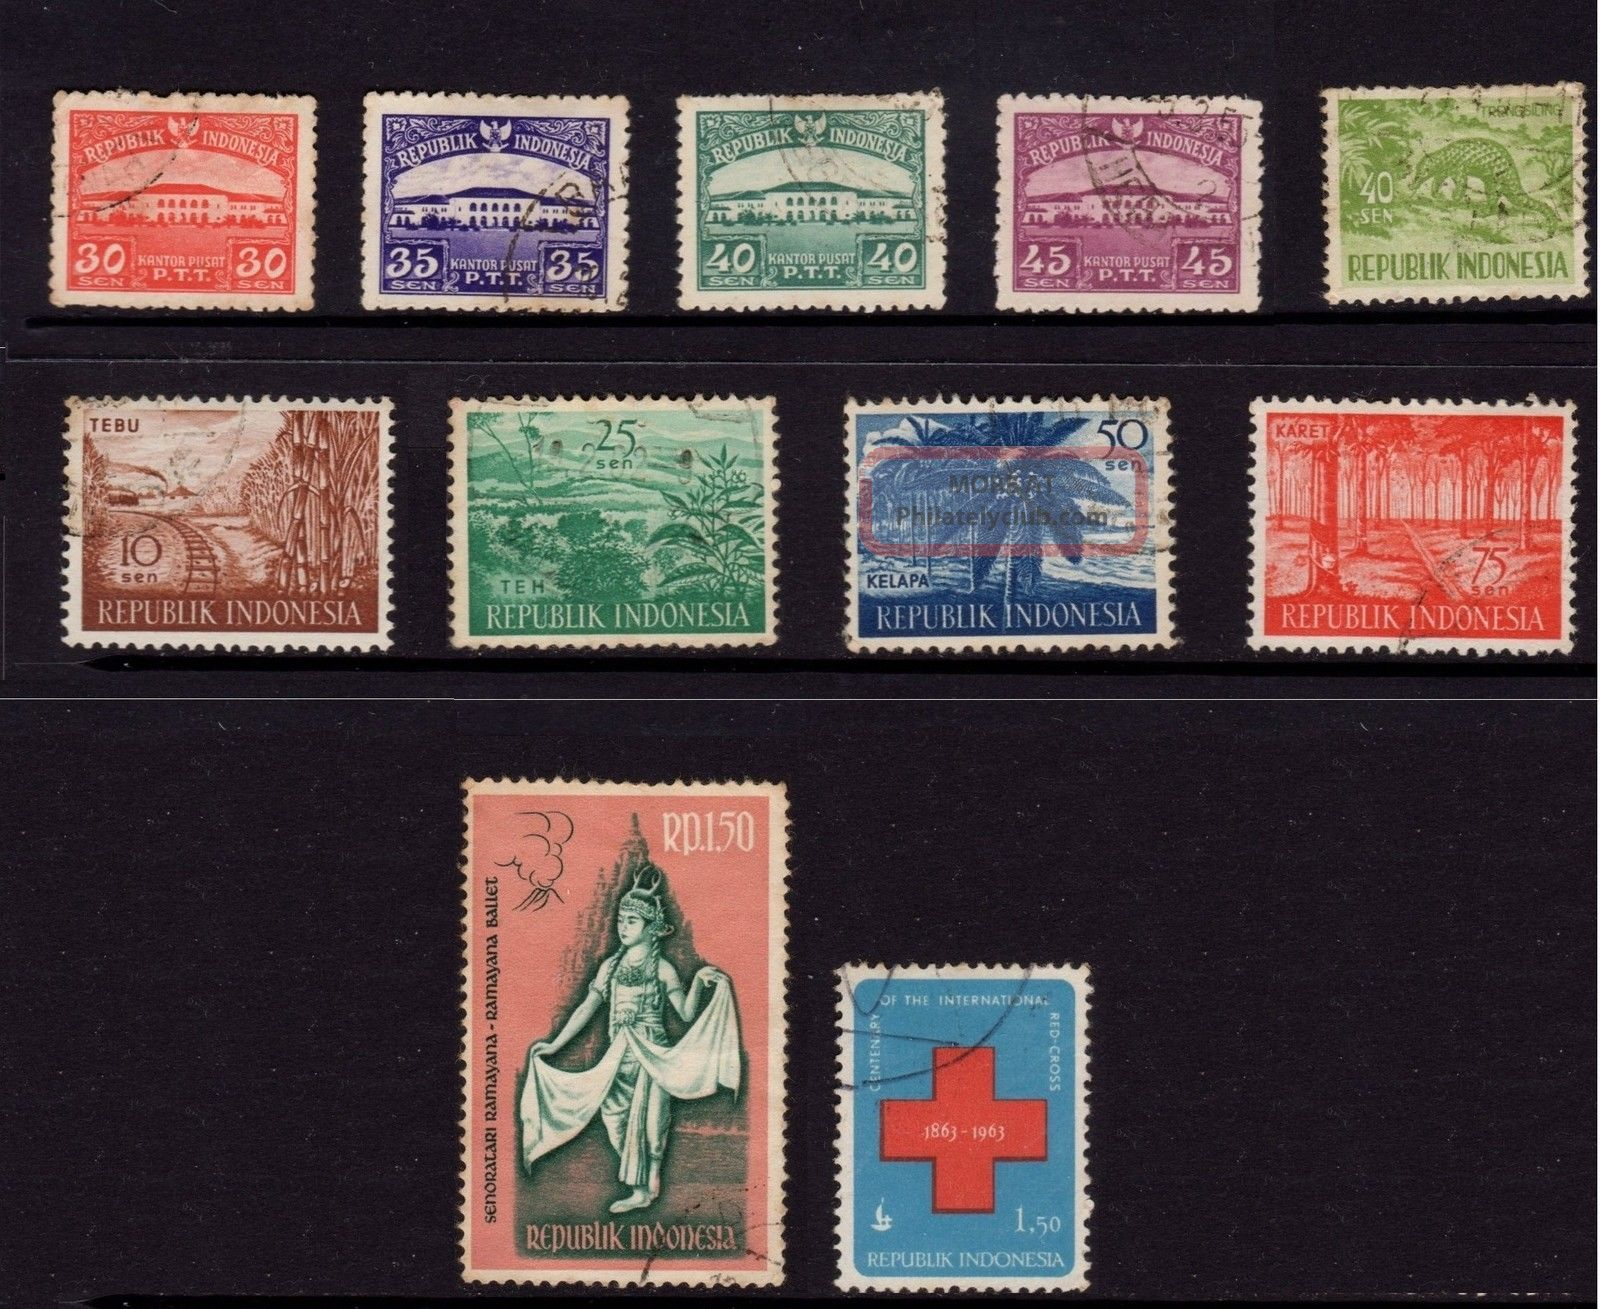 Indonesia,  Sc 377,  378,  379,  380,  451,  495,  498,  499,  500,  547 & 601, Asia photo